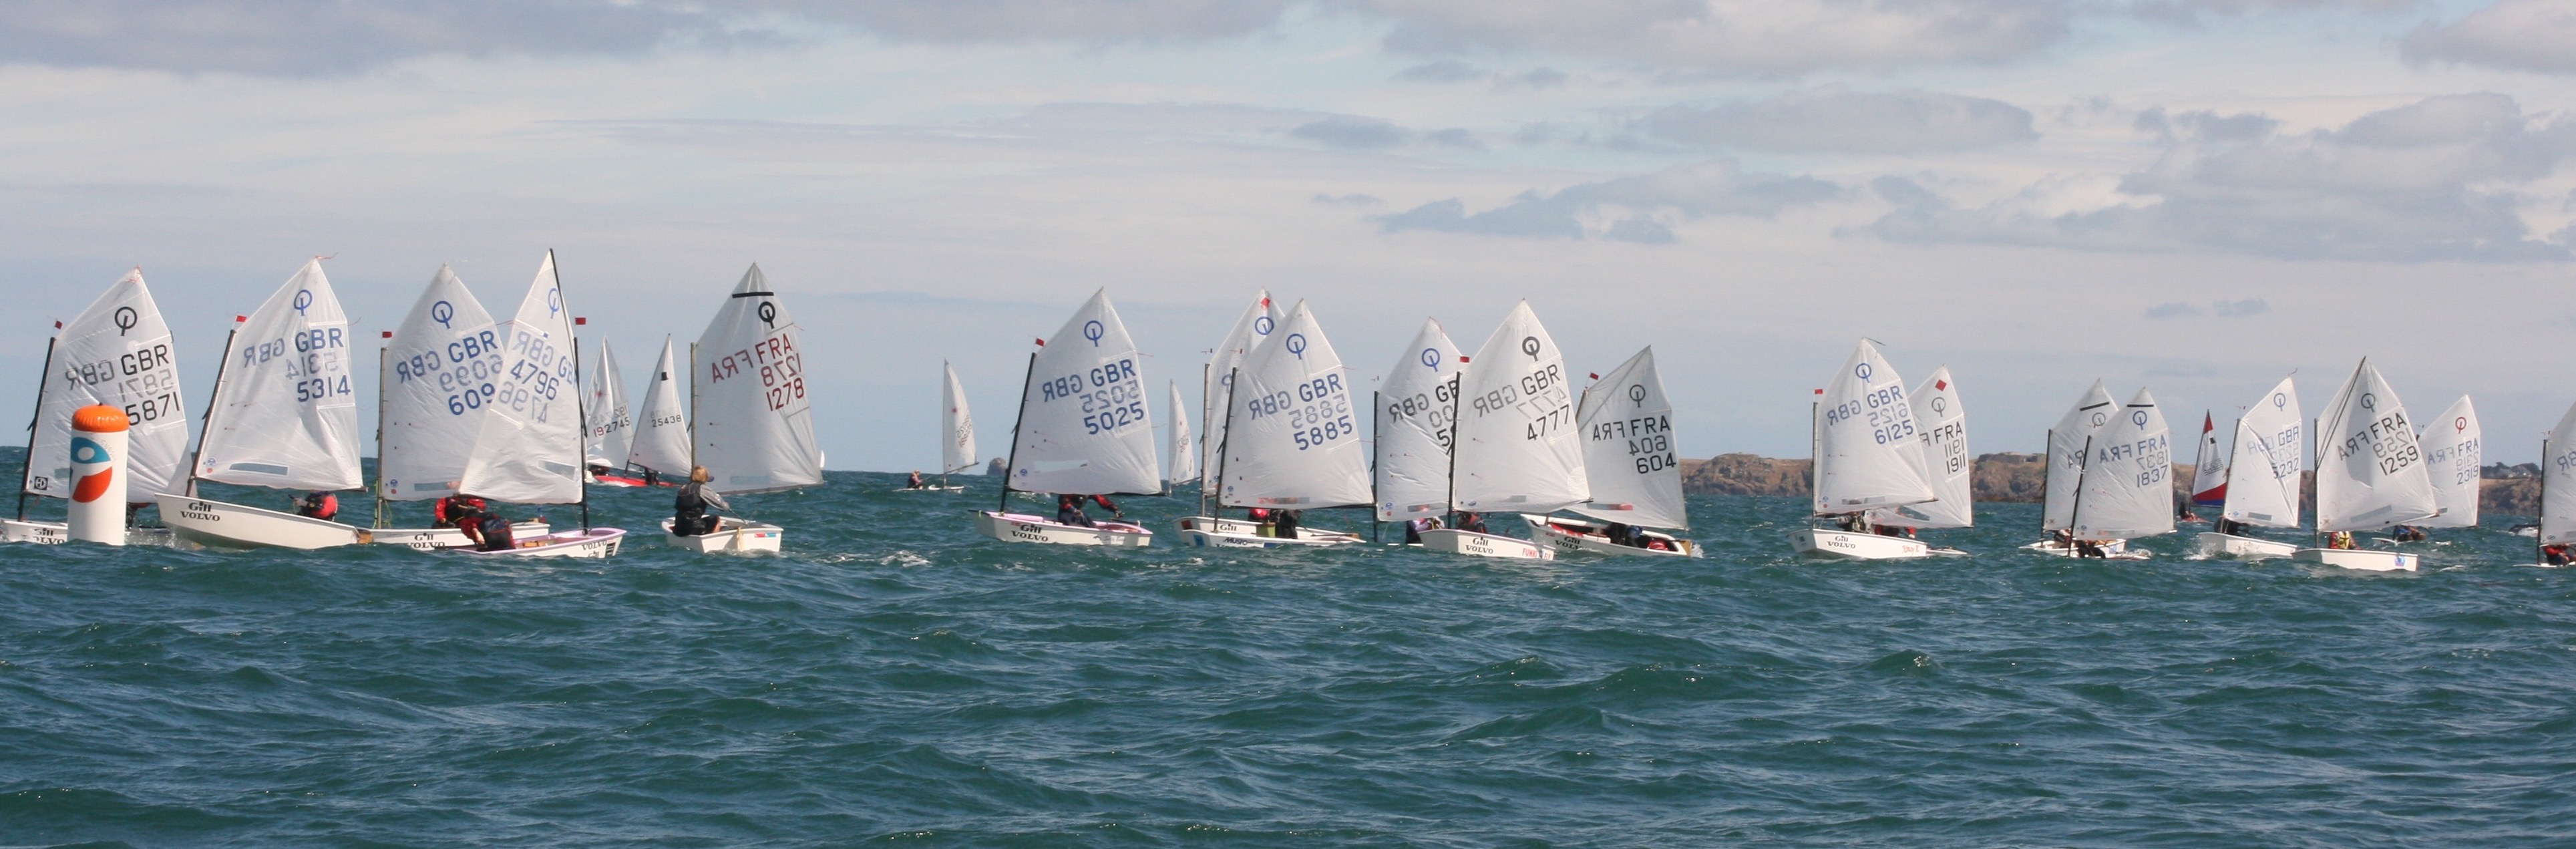 St Catherines Sailing Club Jersey Competitive Multiclass